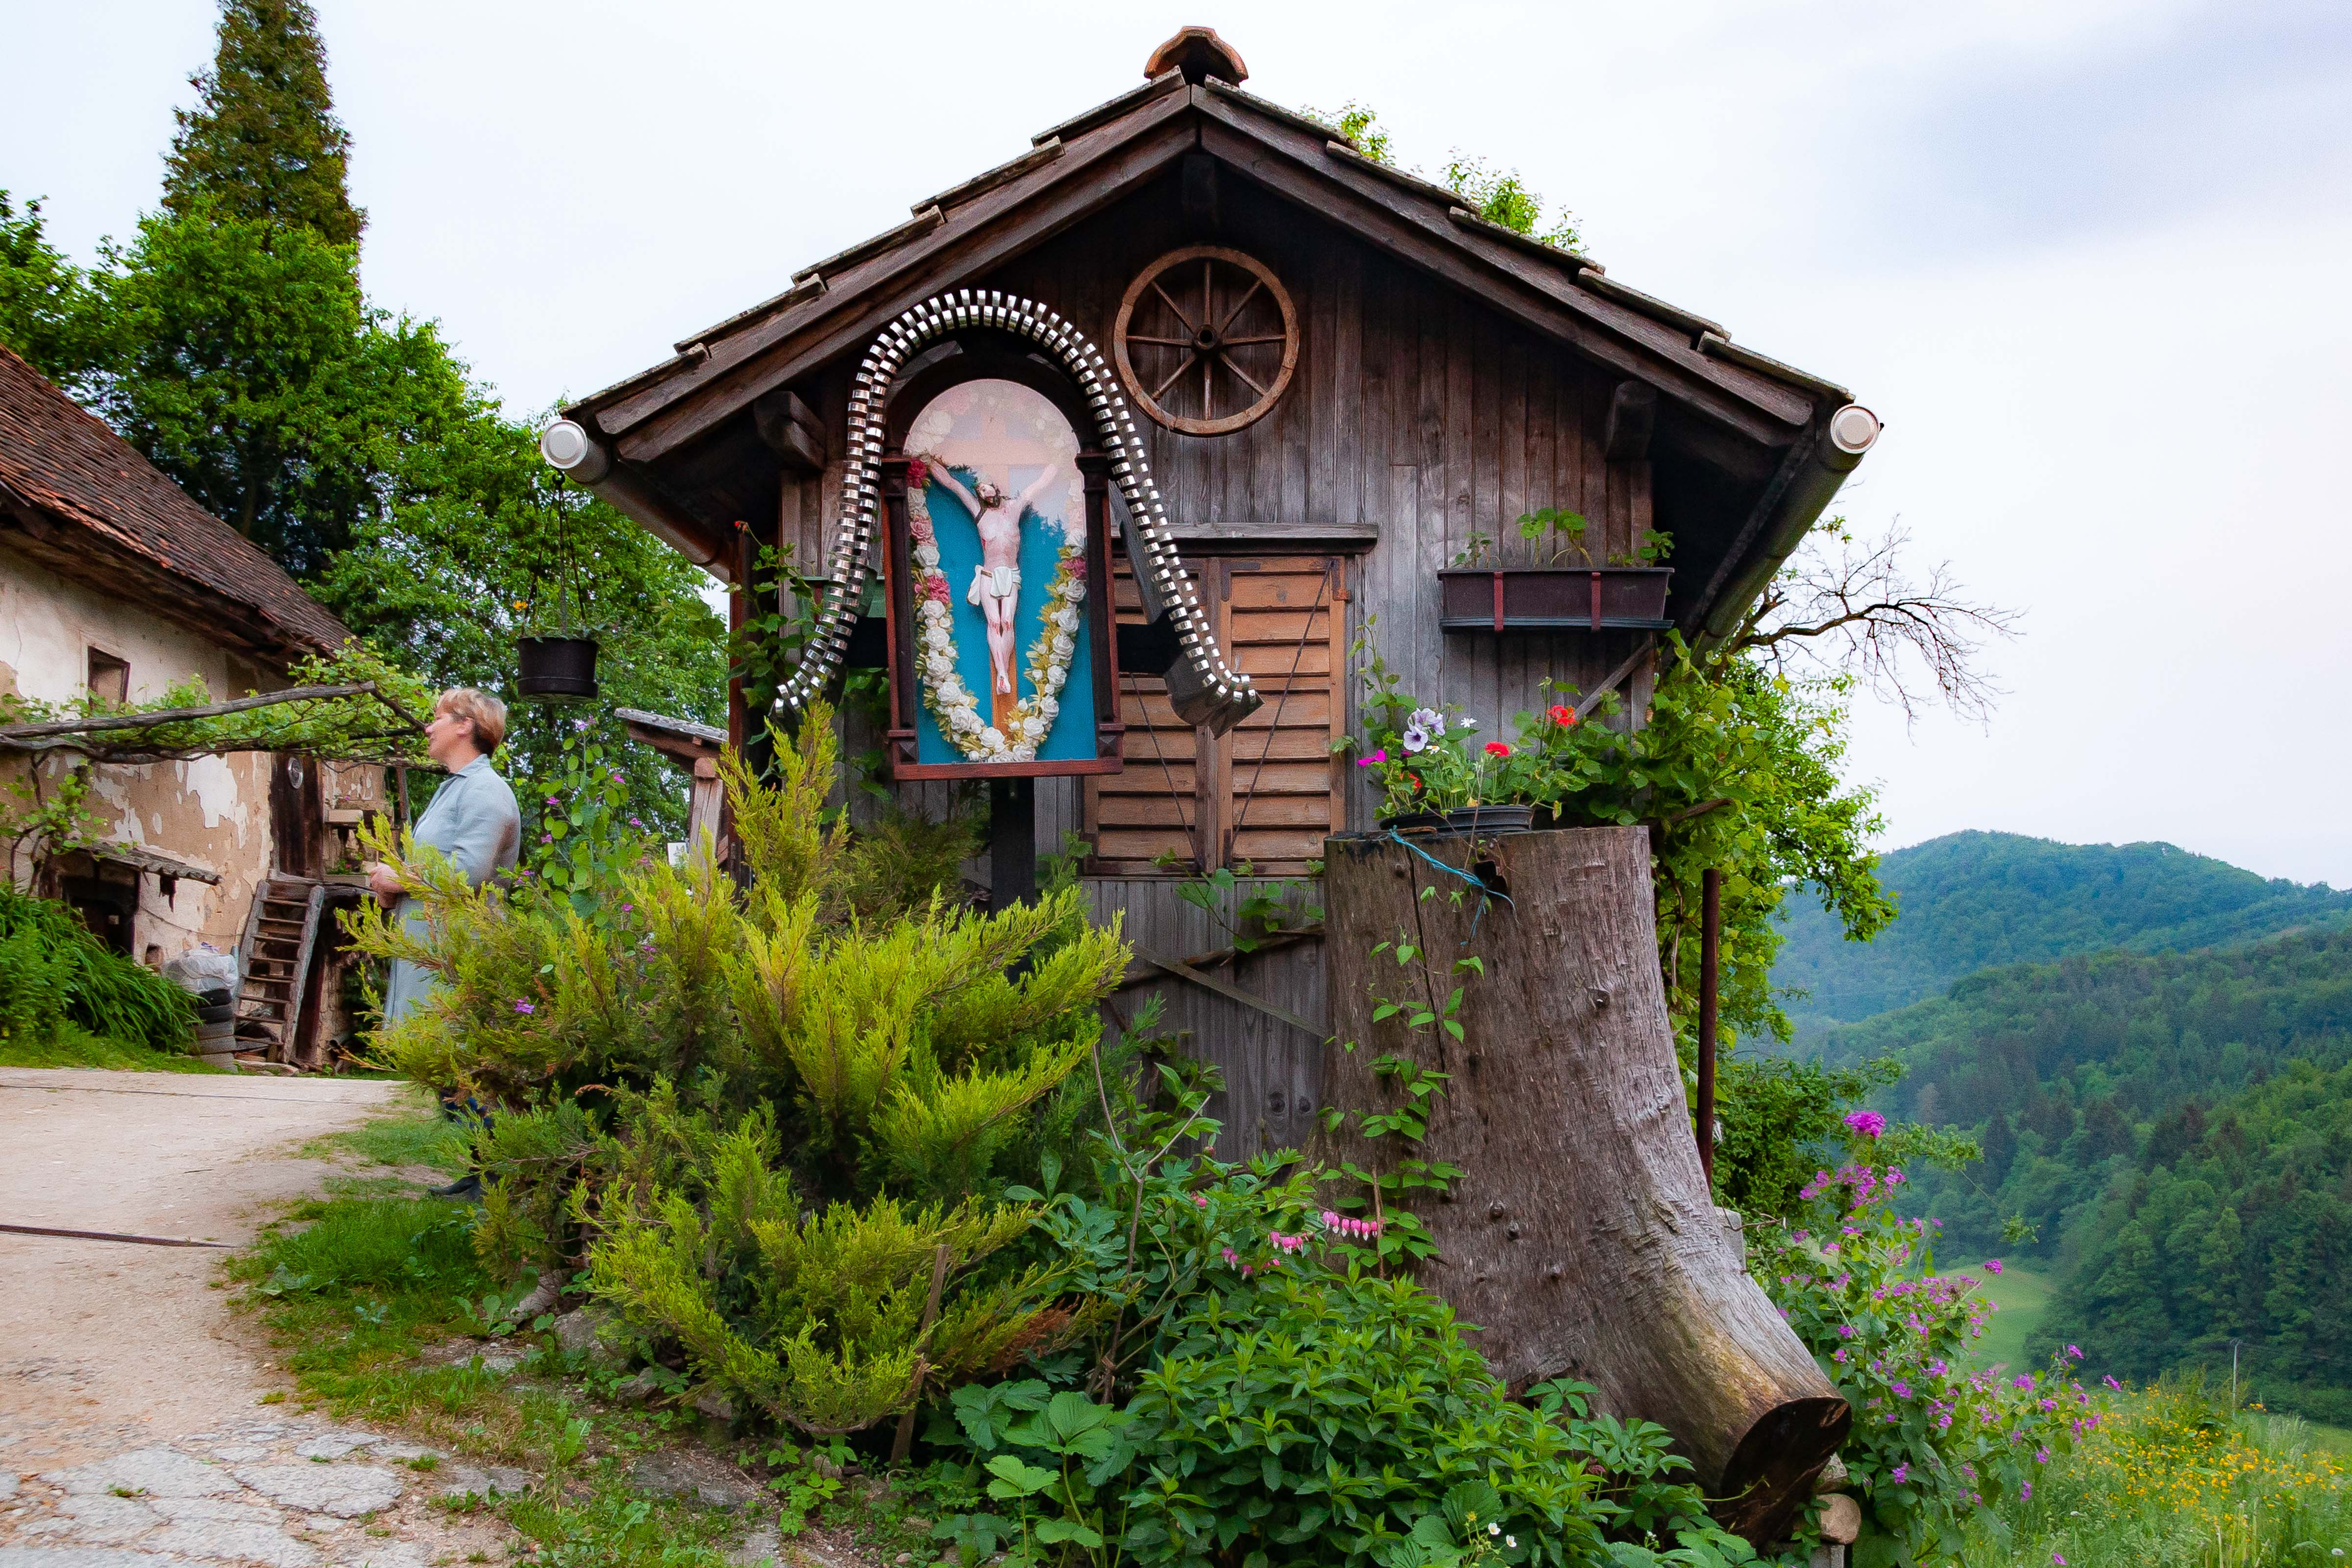 Slovenia, Dobrna Prov, Unusual House With Icon At Day, 2006, IMG 8077